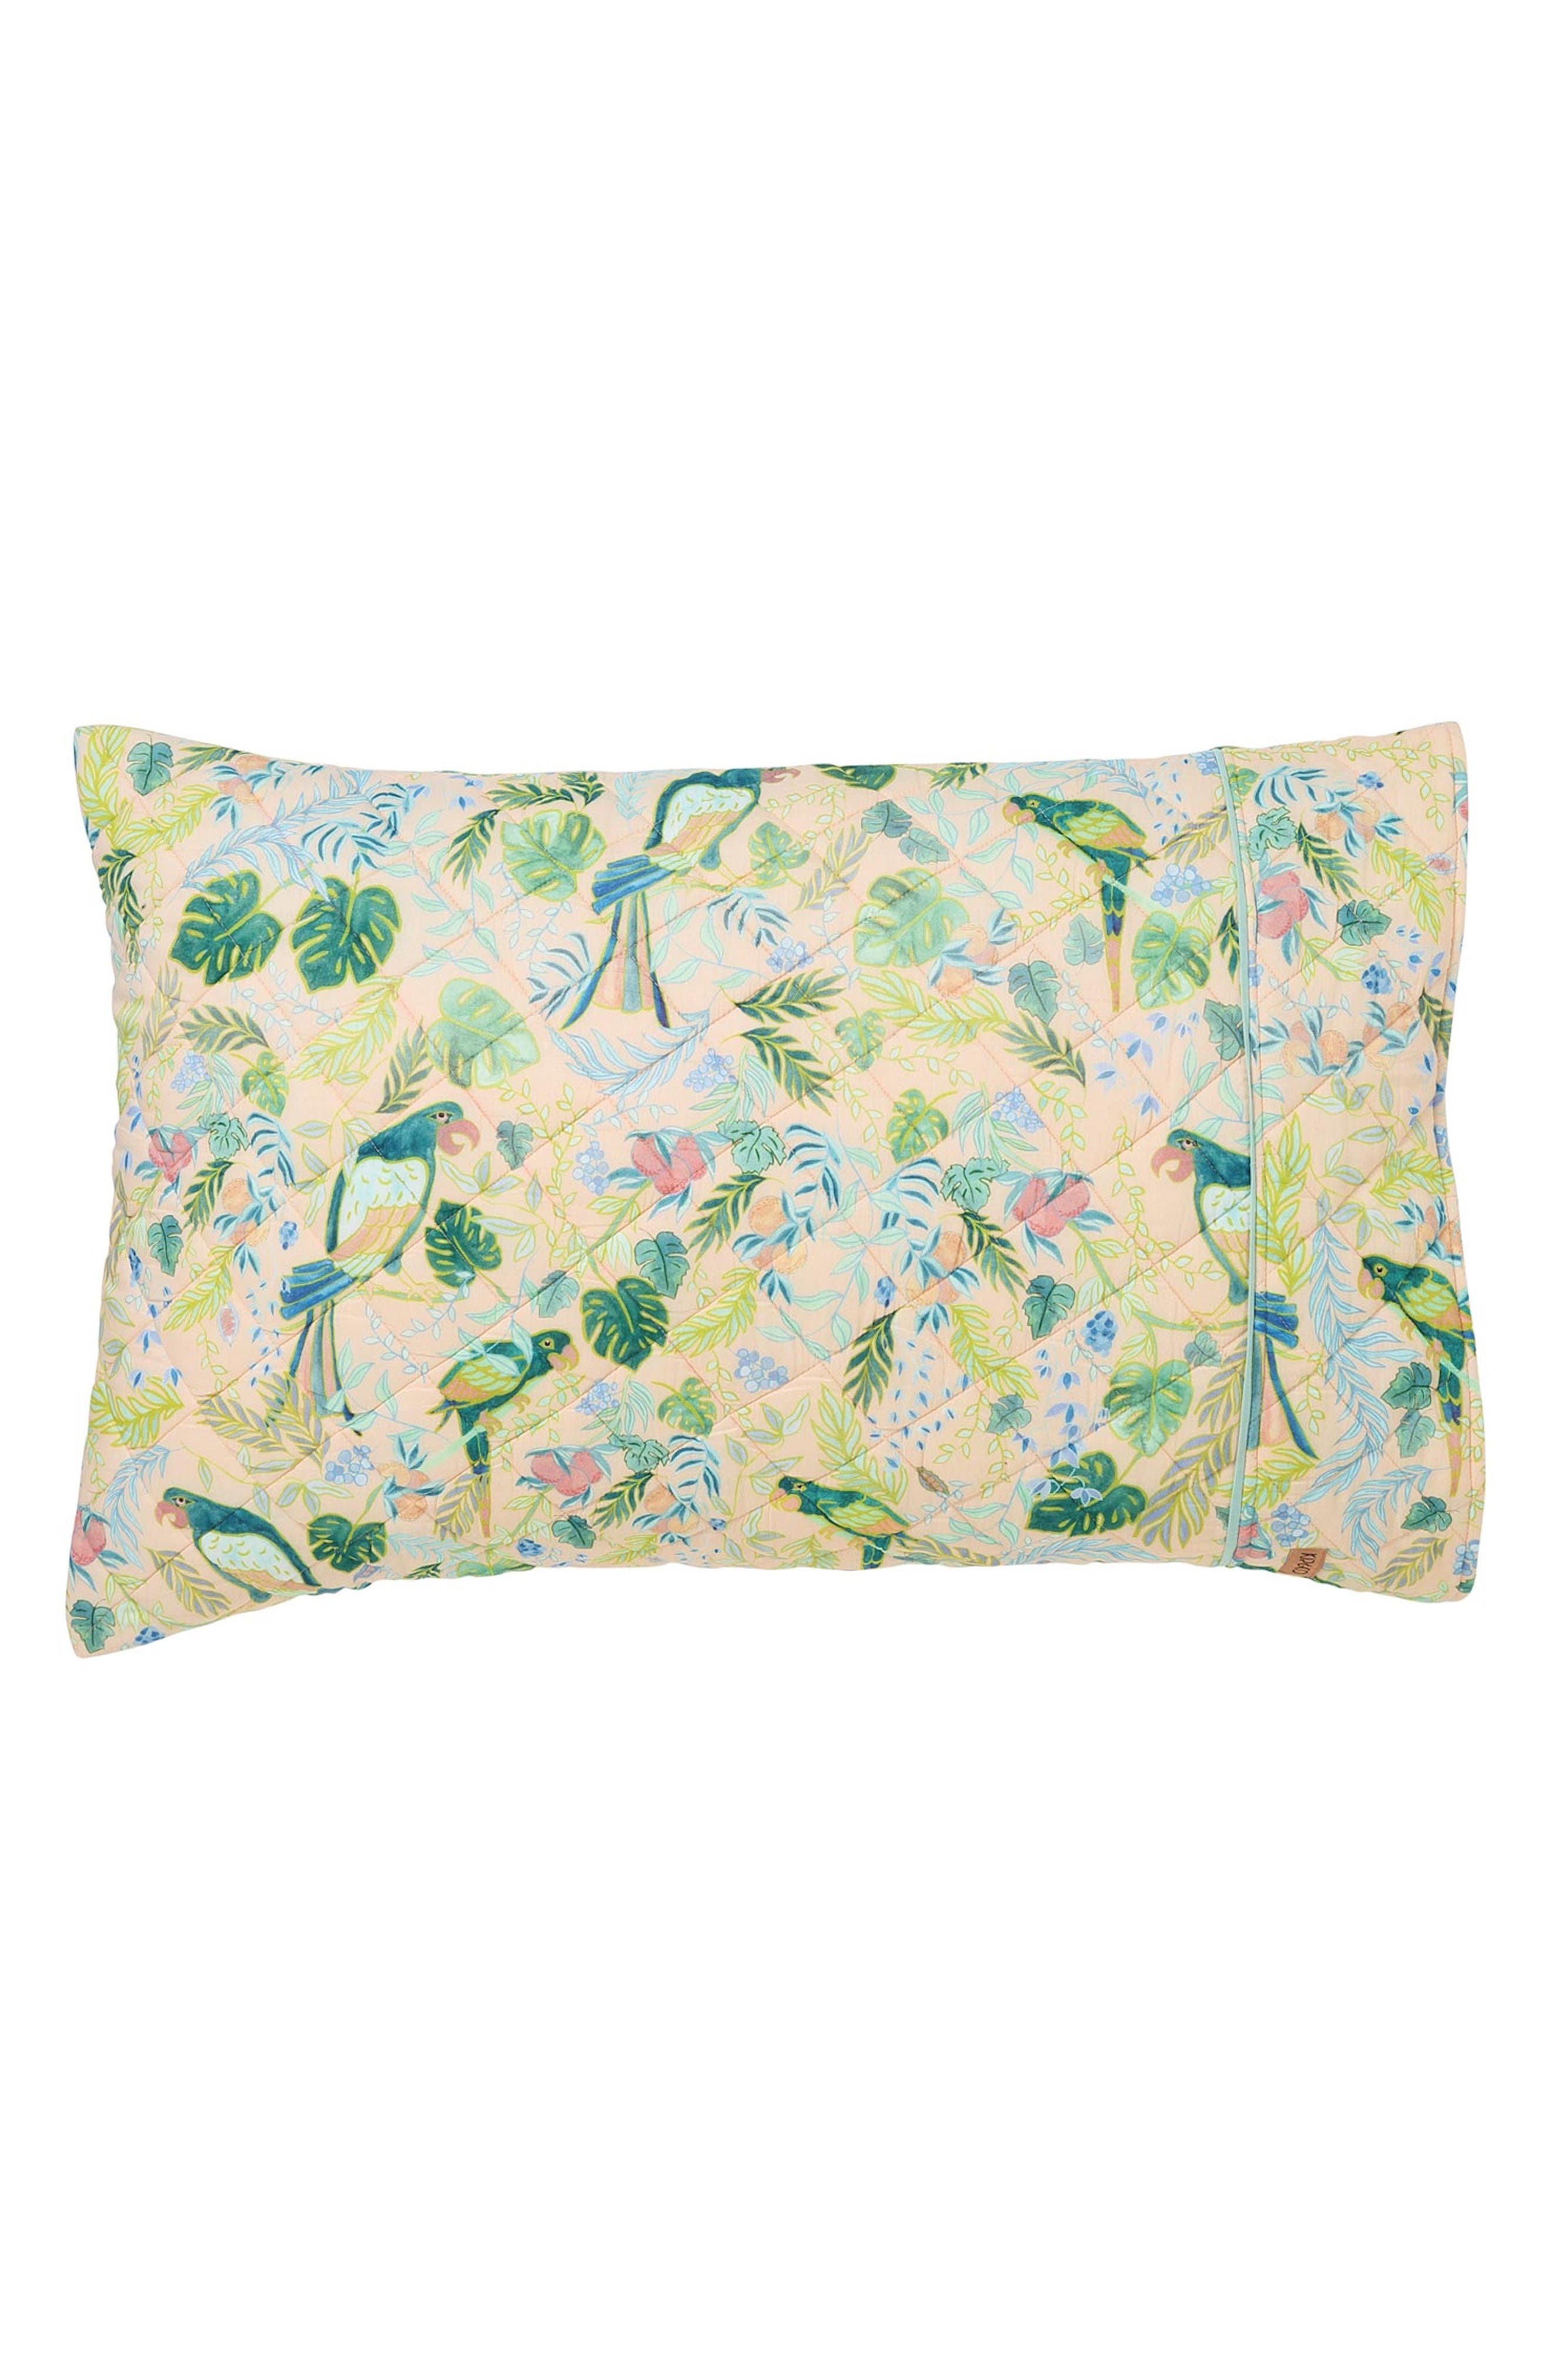 KIP&CO Birds of Paradise Quilted Cotton Pillowcase, Main, color, 001